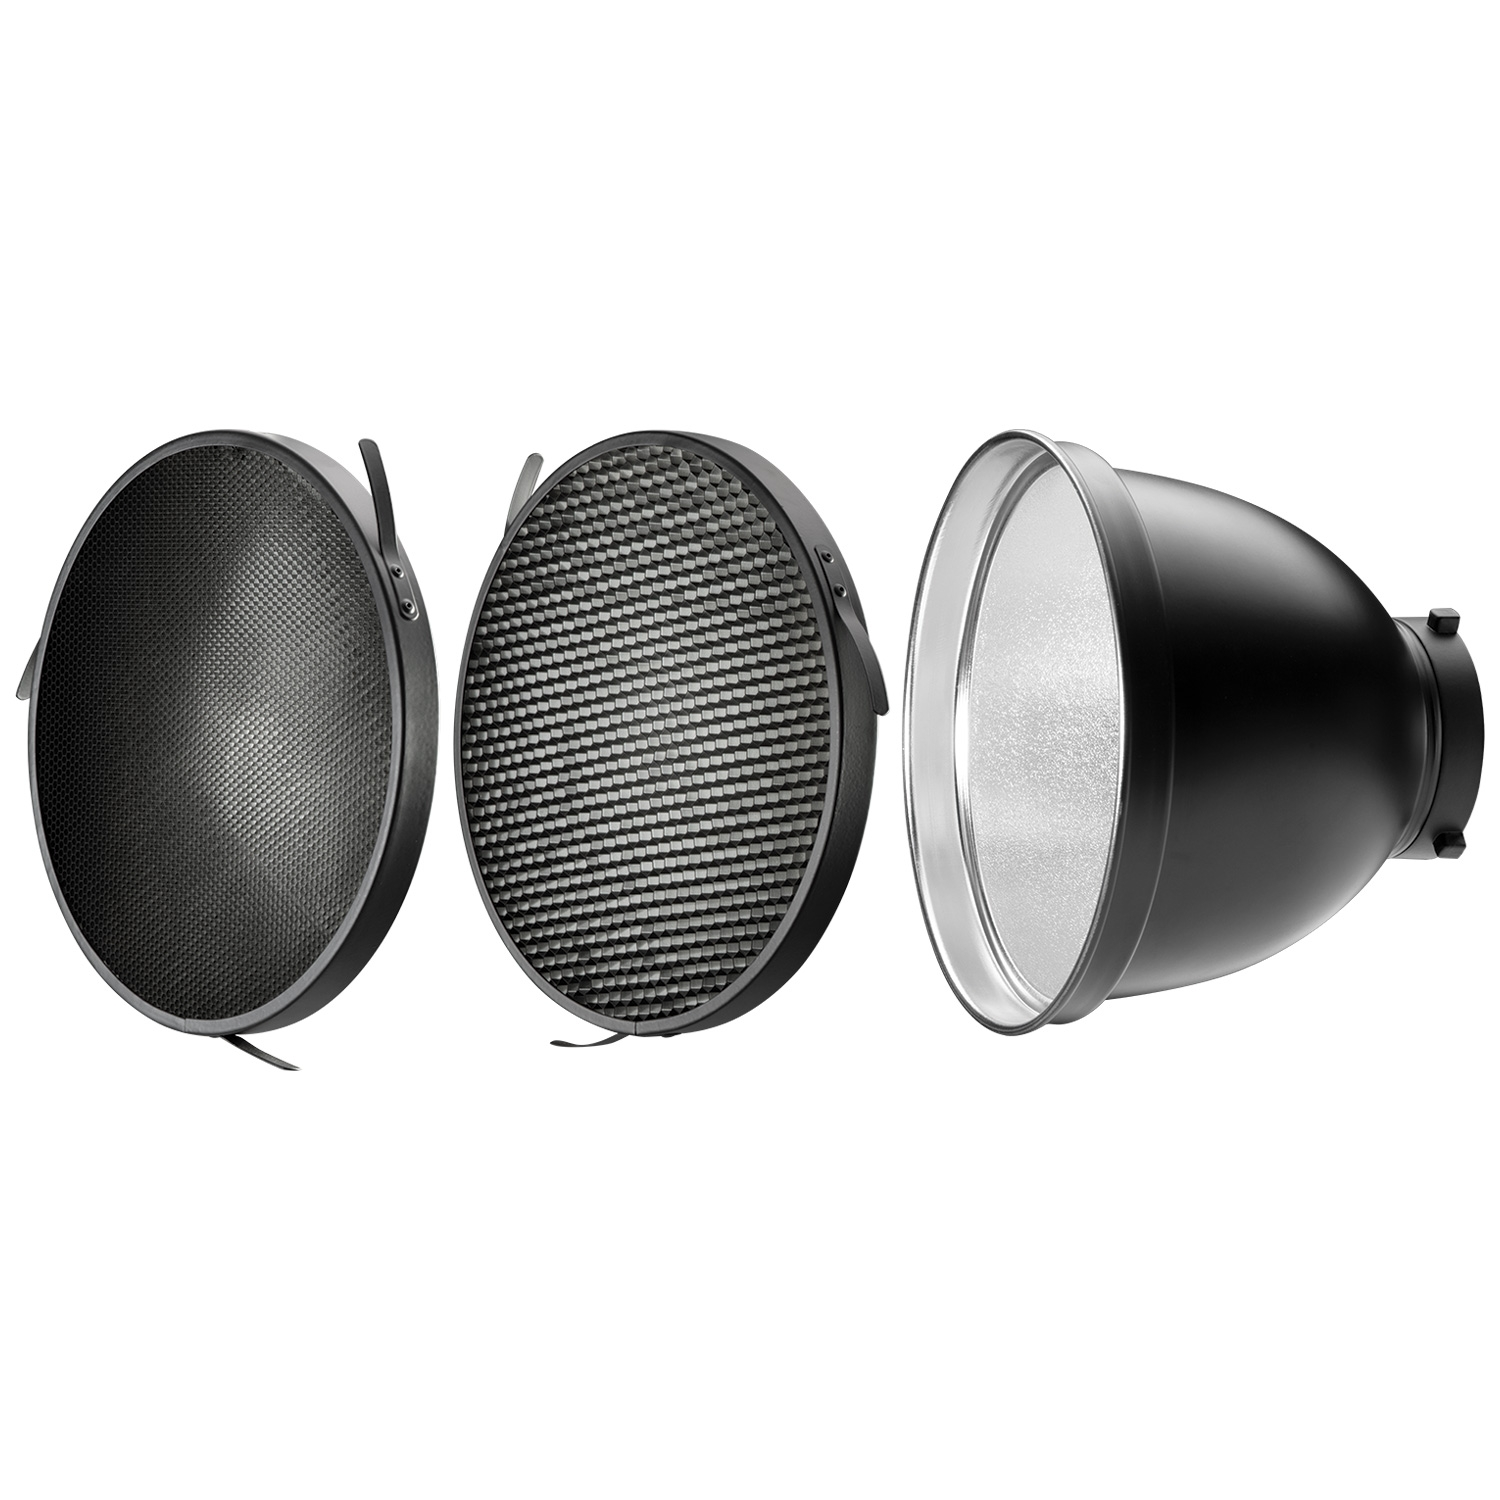 70-Degree Wide Reflector with Honeycomb Grids (FJ400/Bowens/Godox Mount)